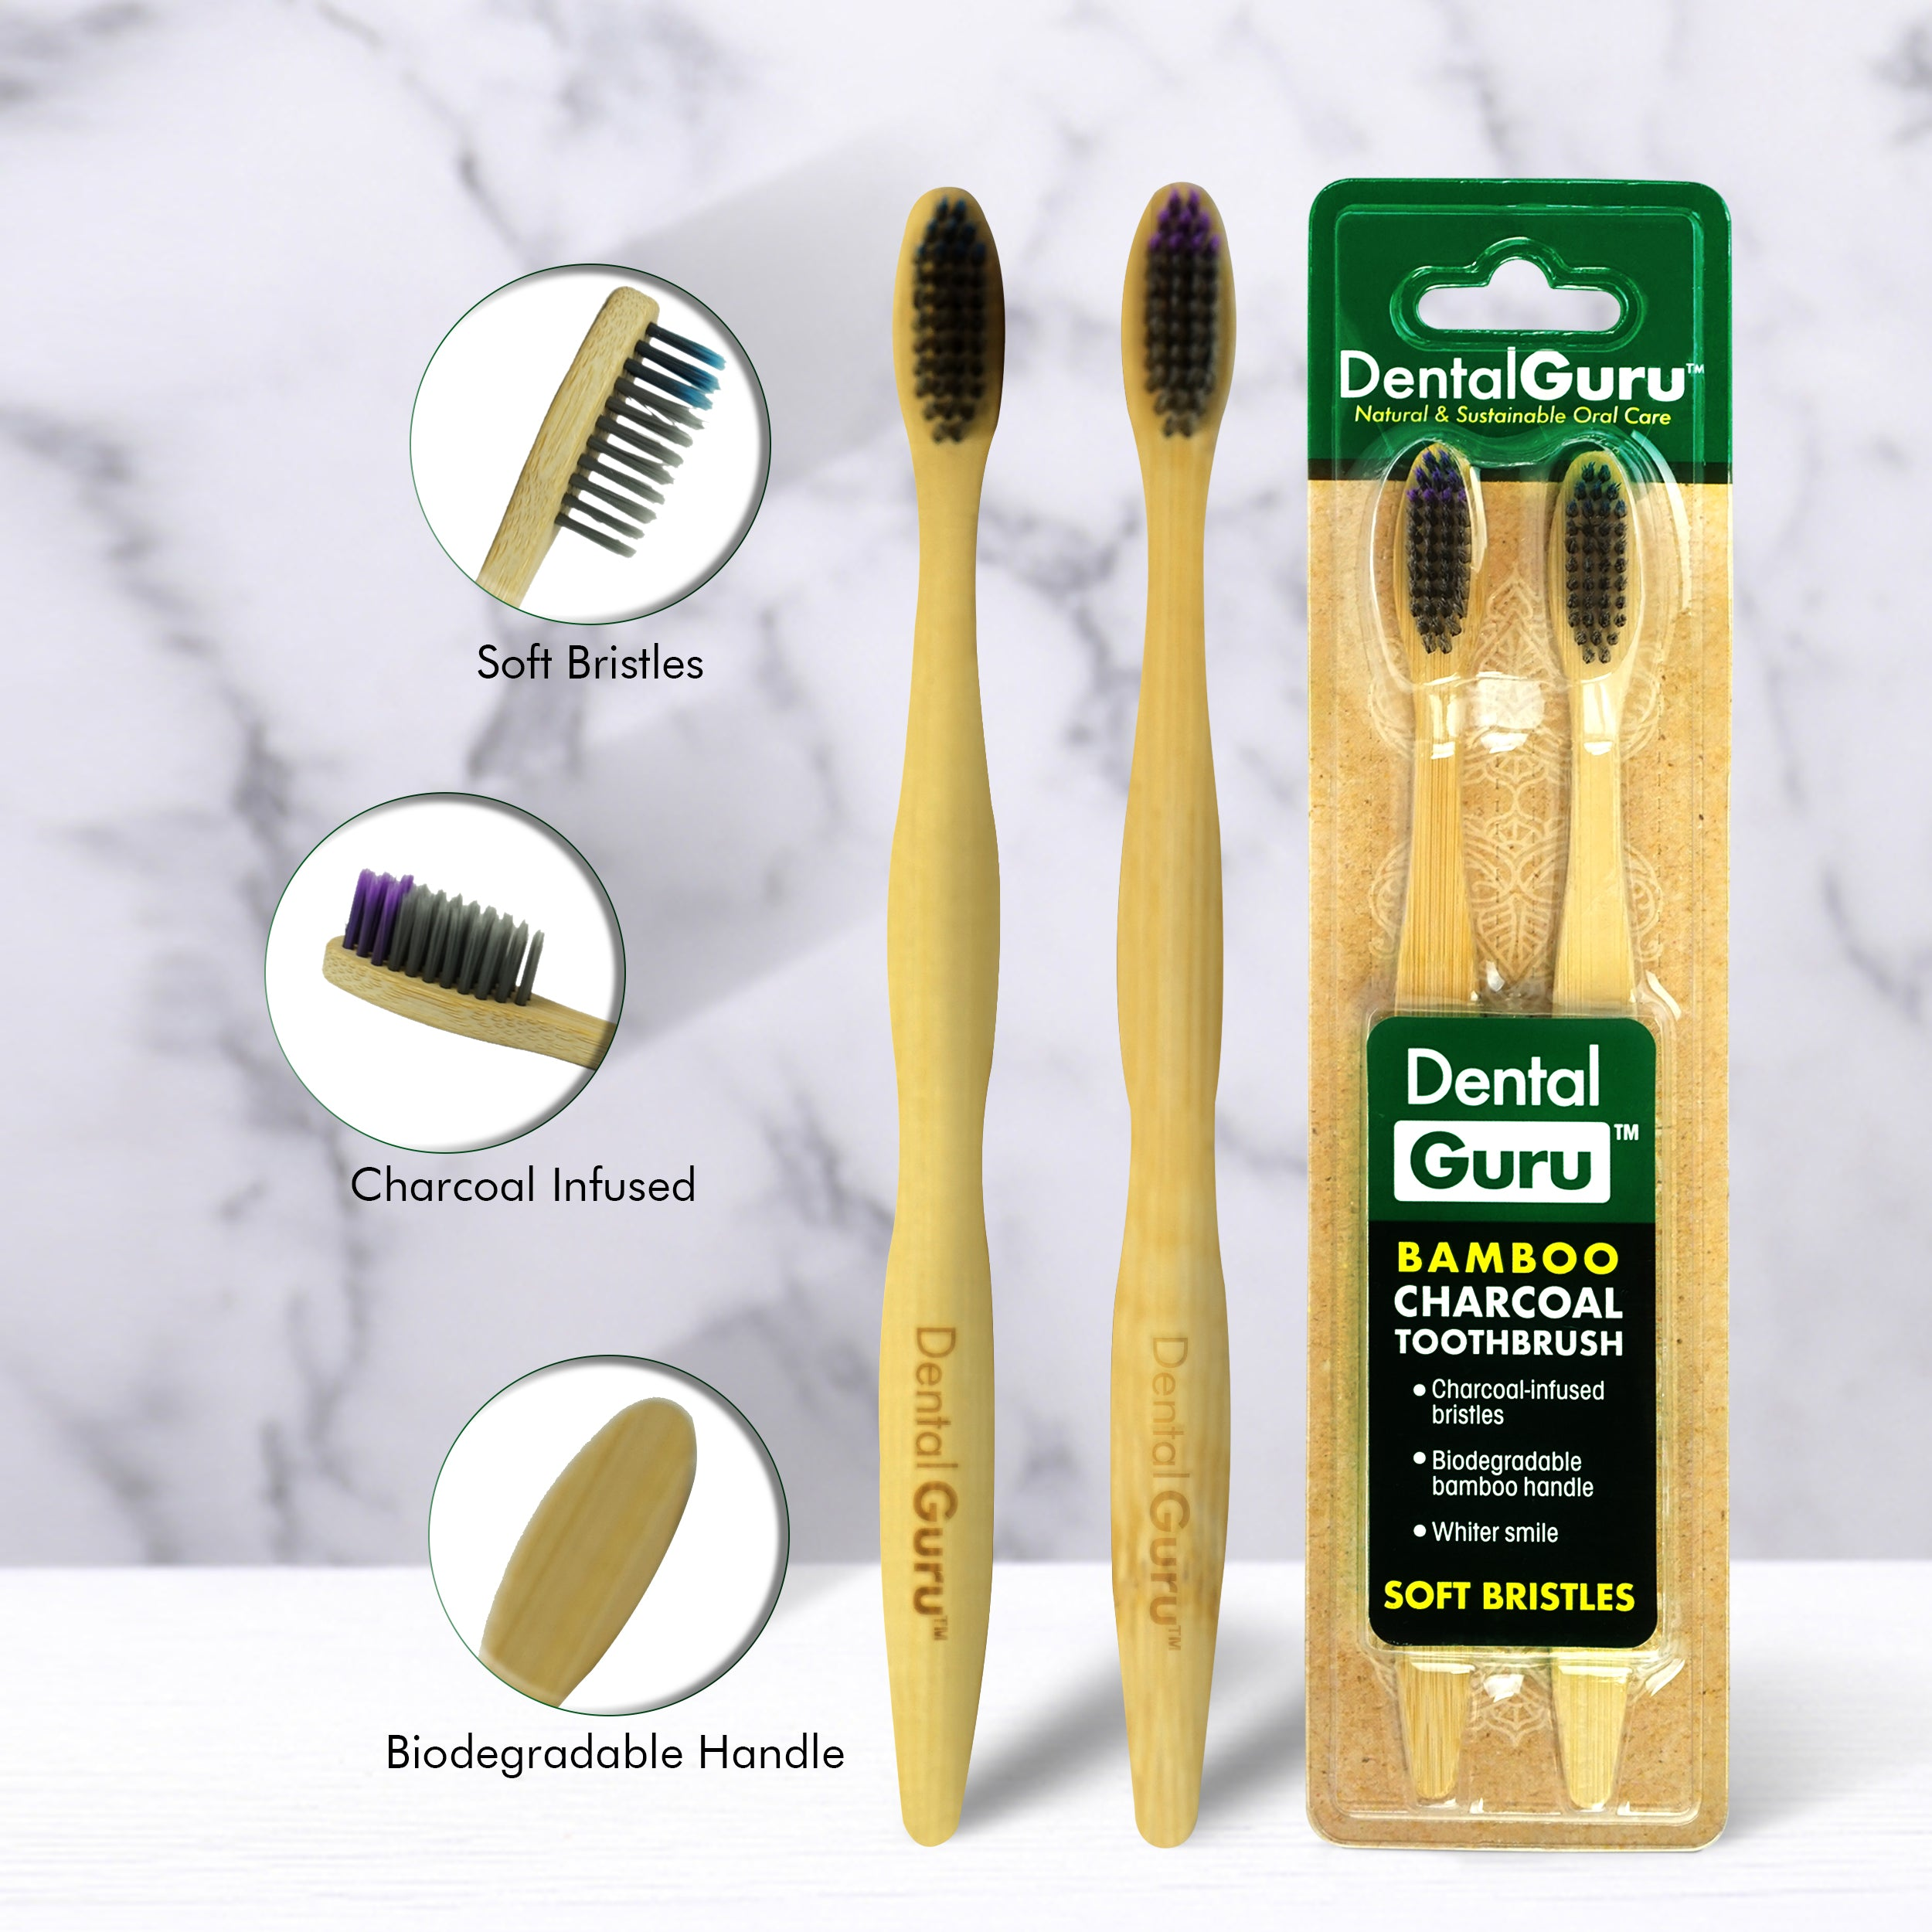 Bamboo Charcoal Toothbrush (pack of 18)